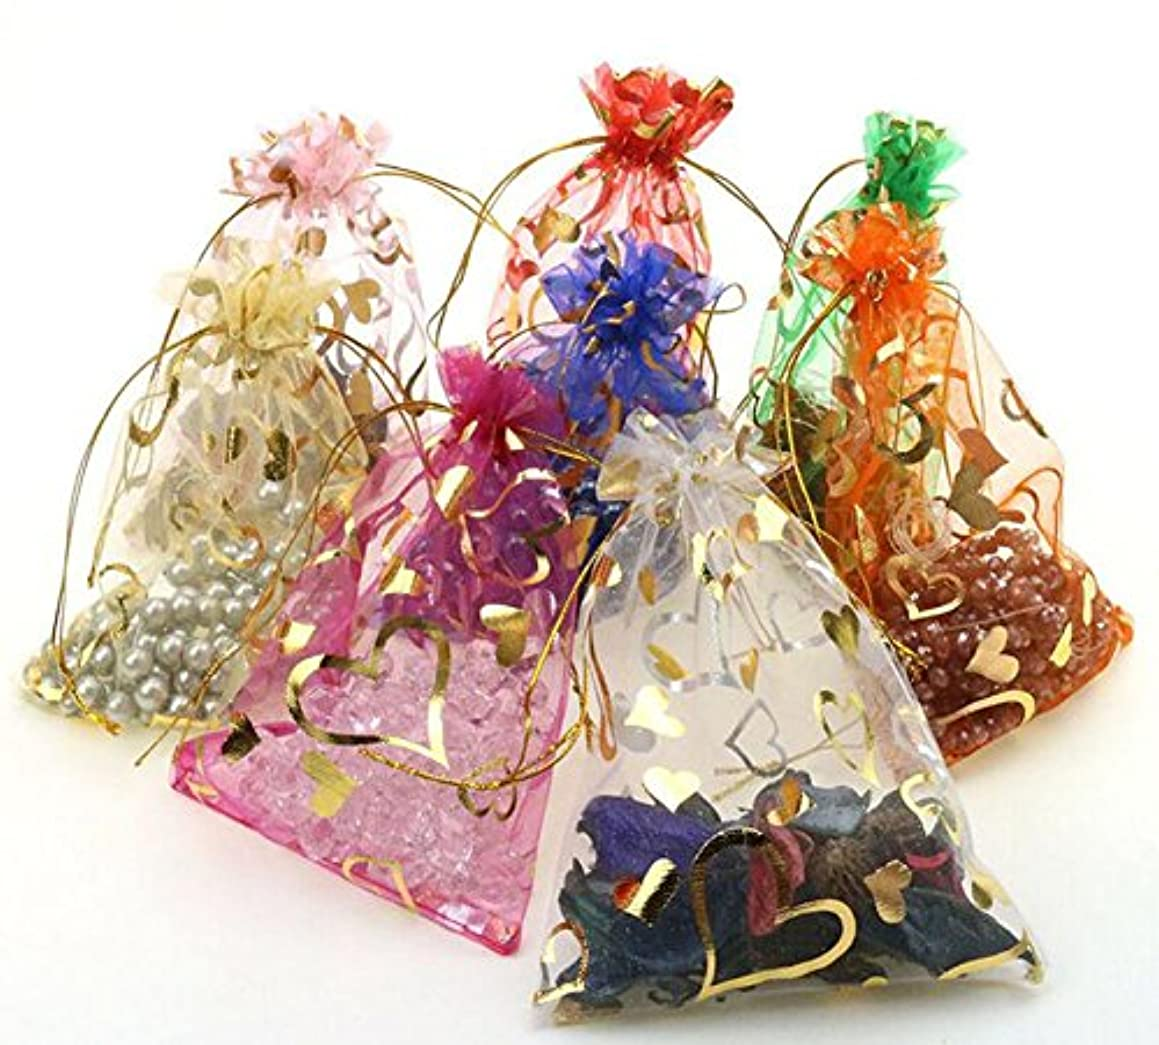 luzen 100 Pieces Heart Print Organza Bags Candy Bags Jewelry Bags Drawstring Pouches Wedding Favors Gift Bags(9x12 CM)